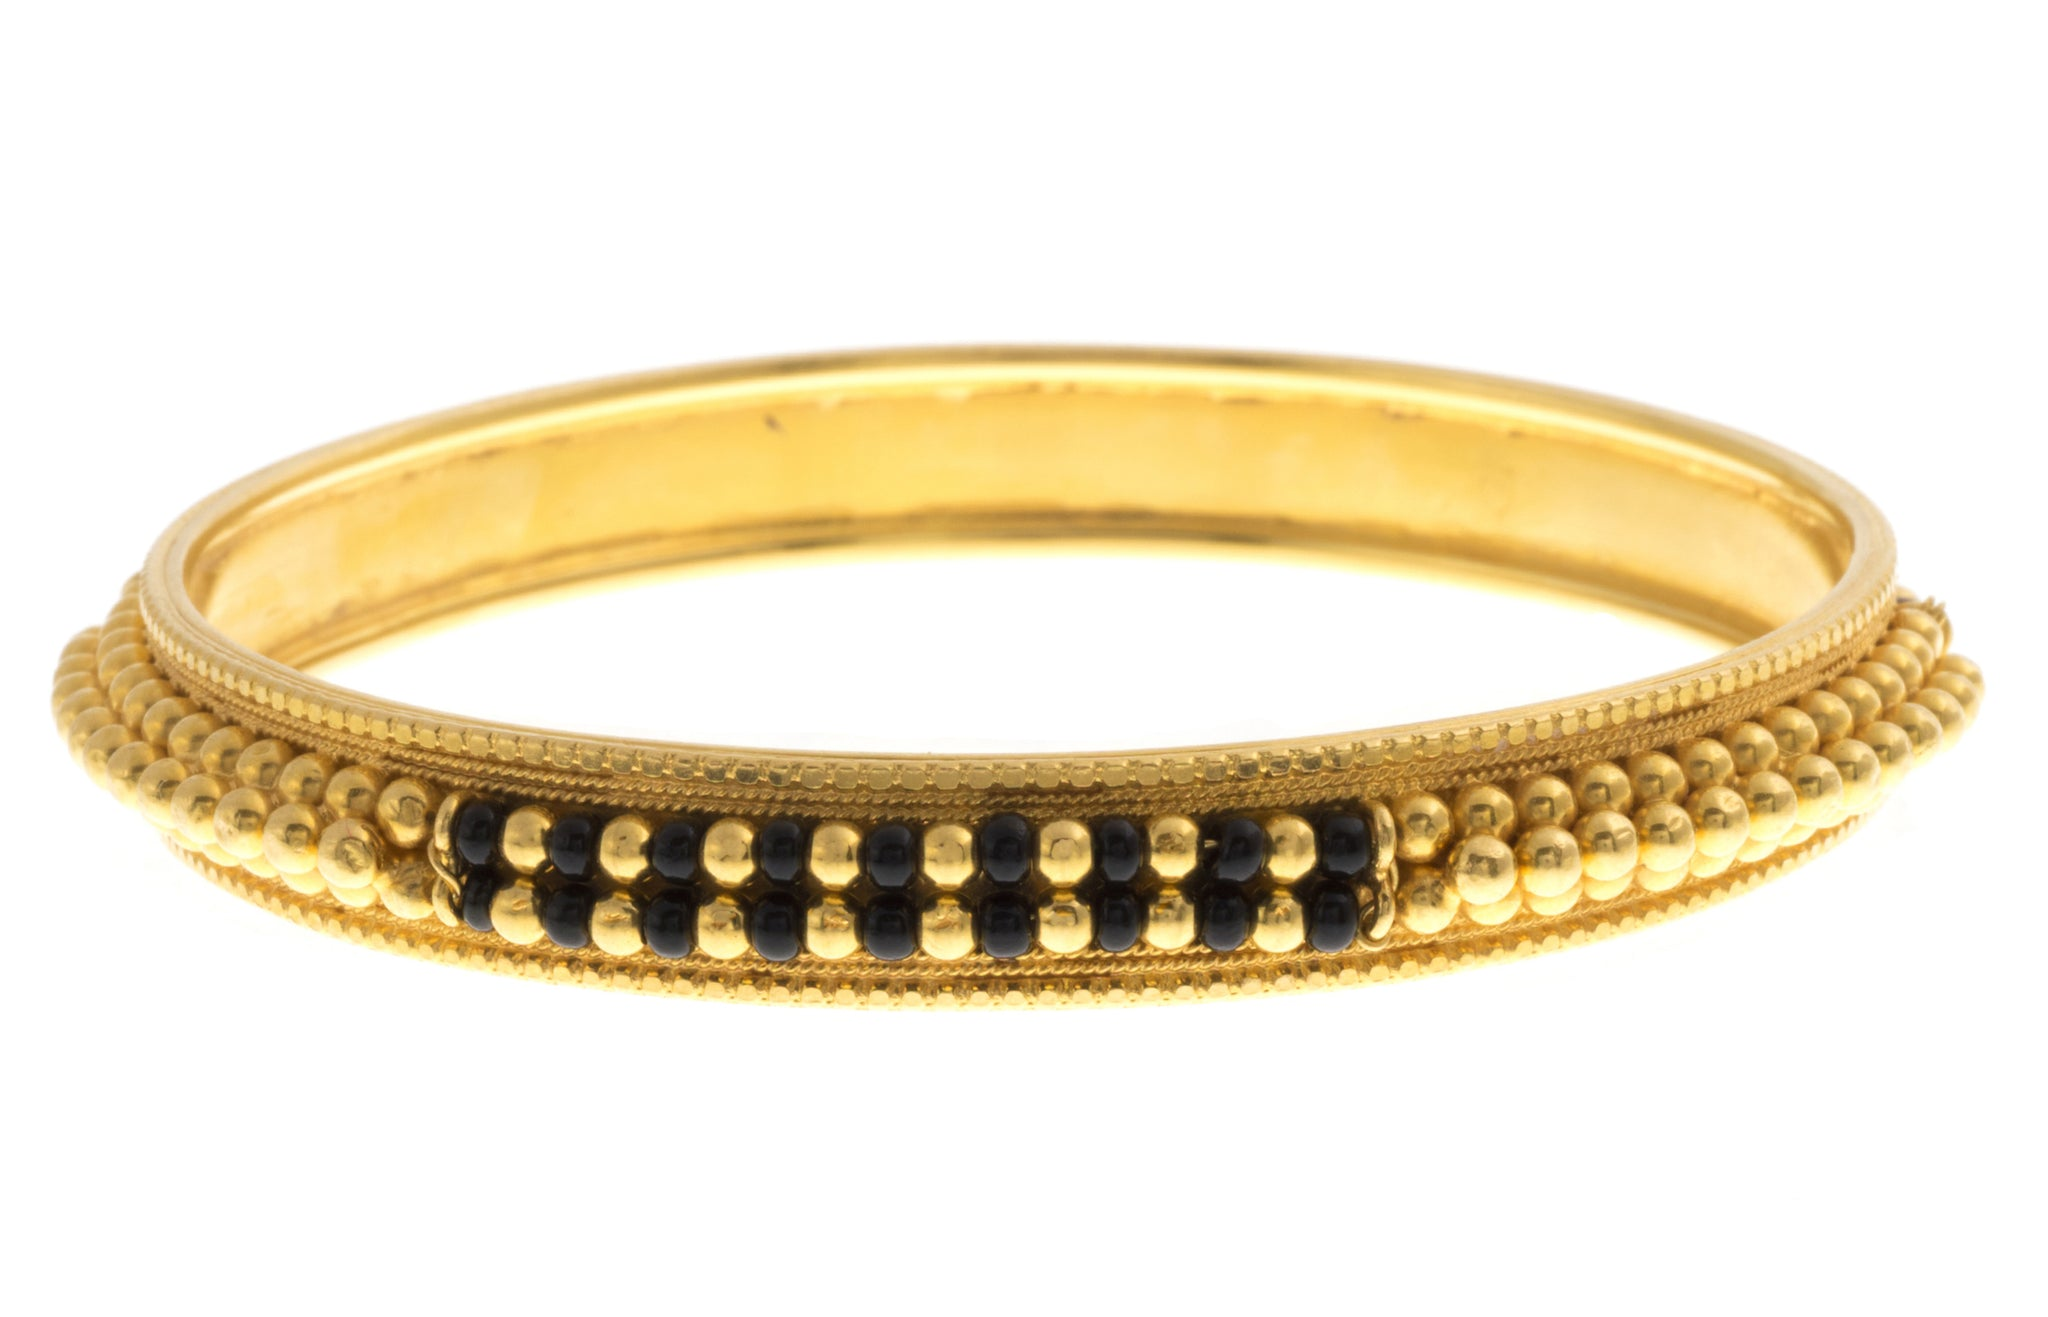 Hand Finished 22ct Yellow Gold Bangle (29.6g) B-1564